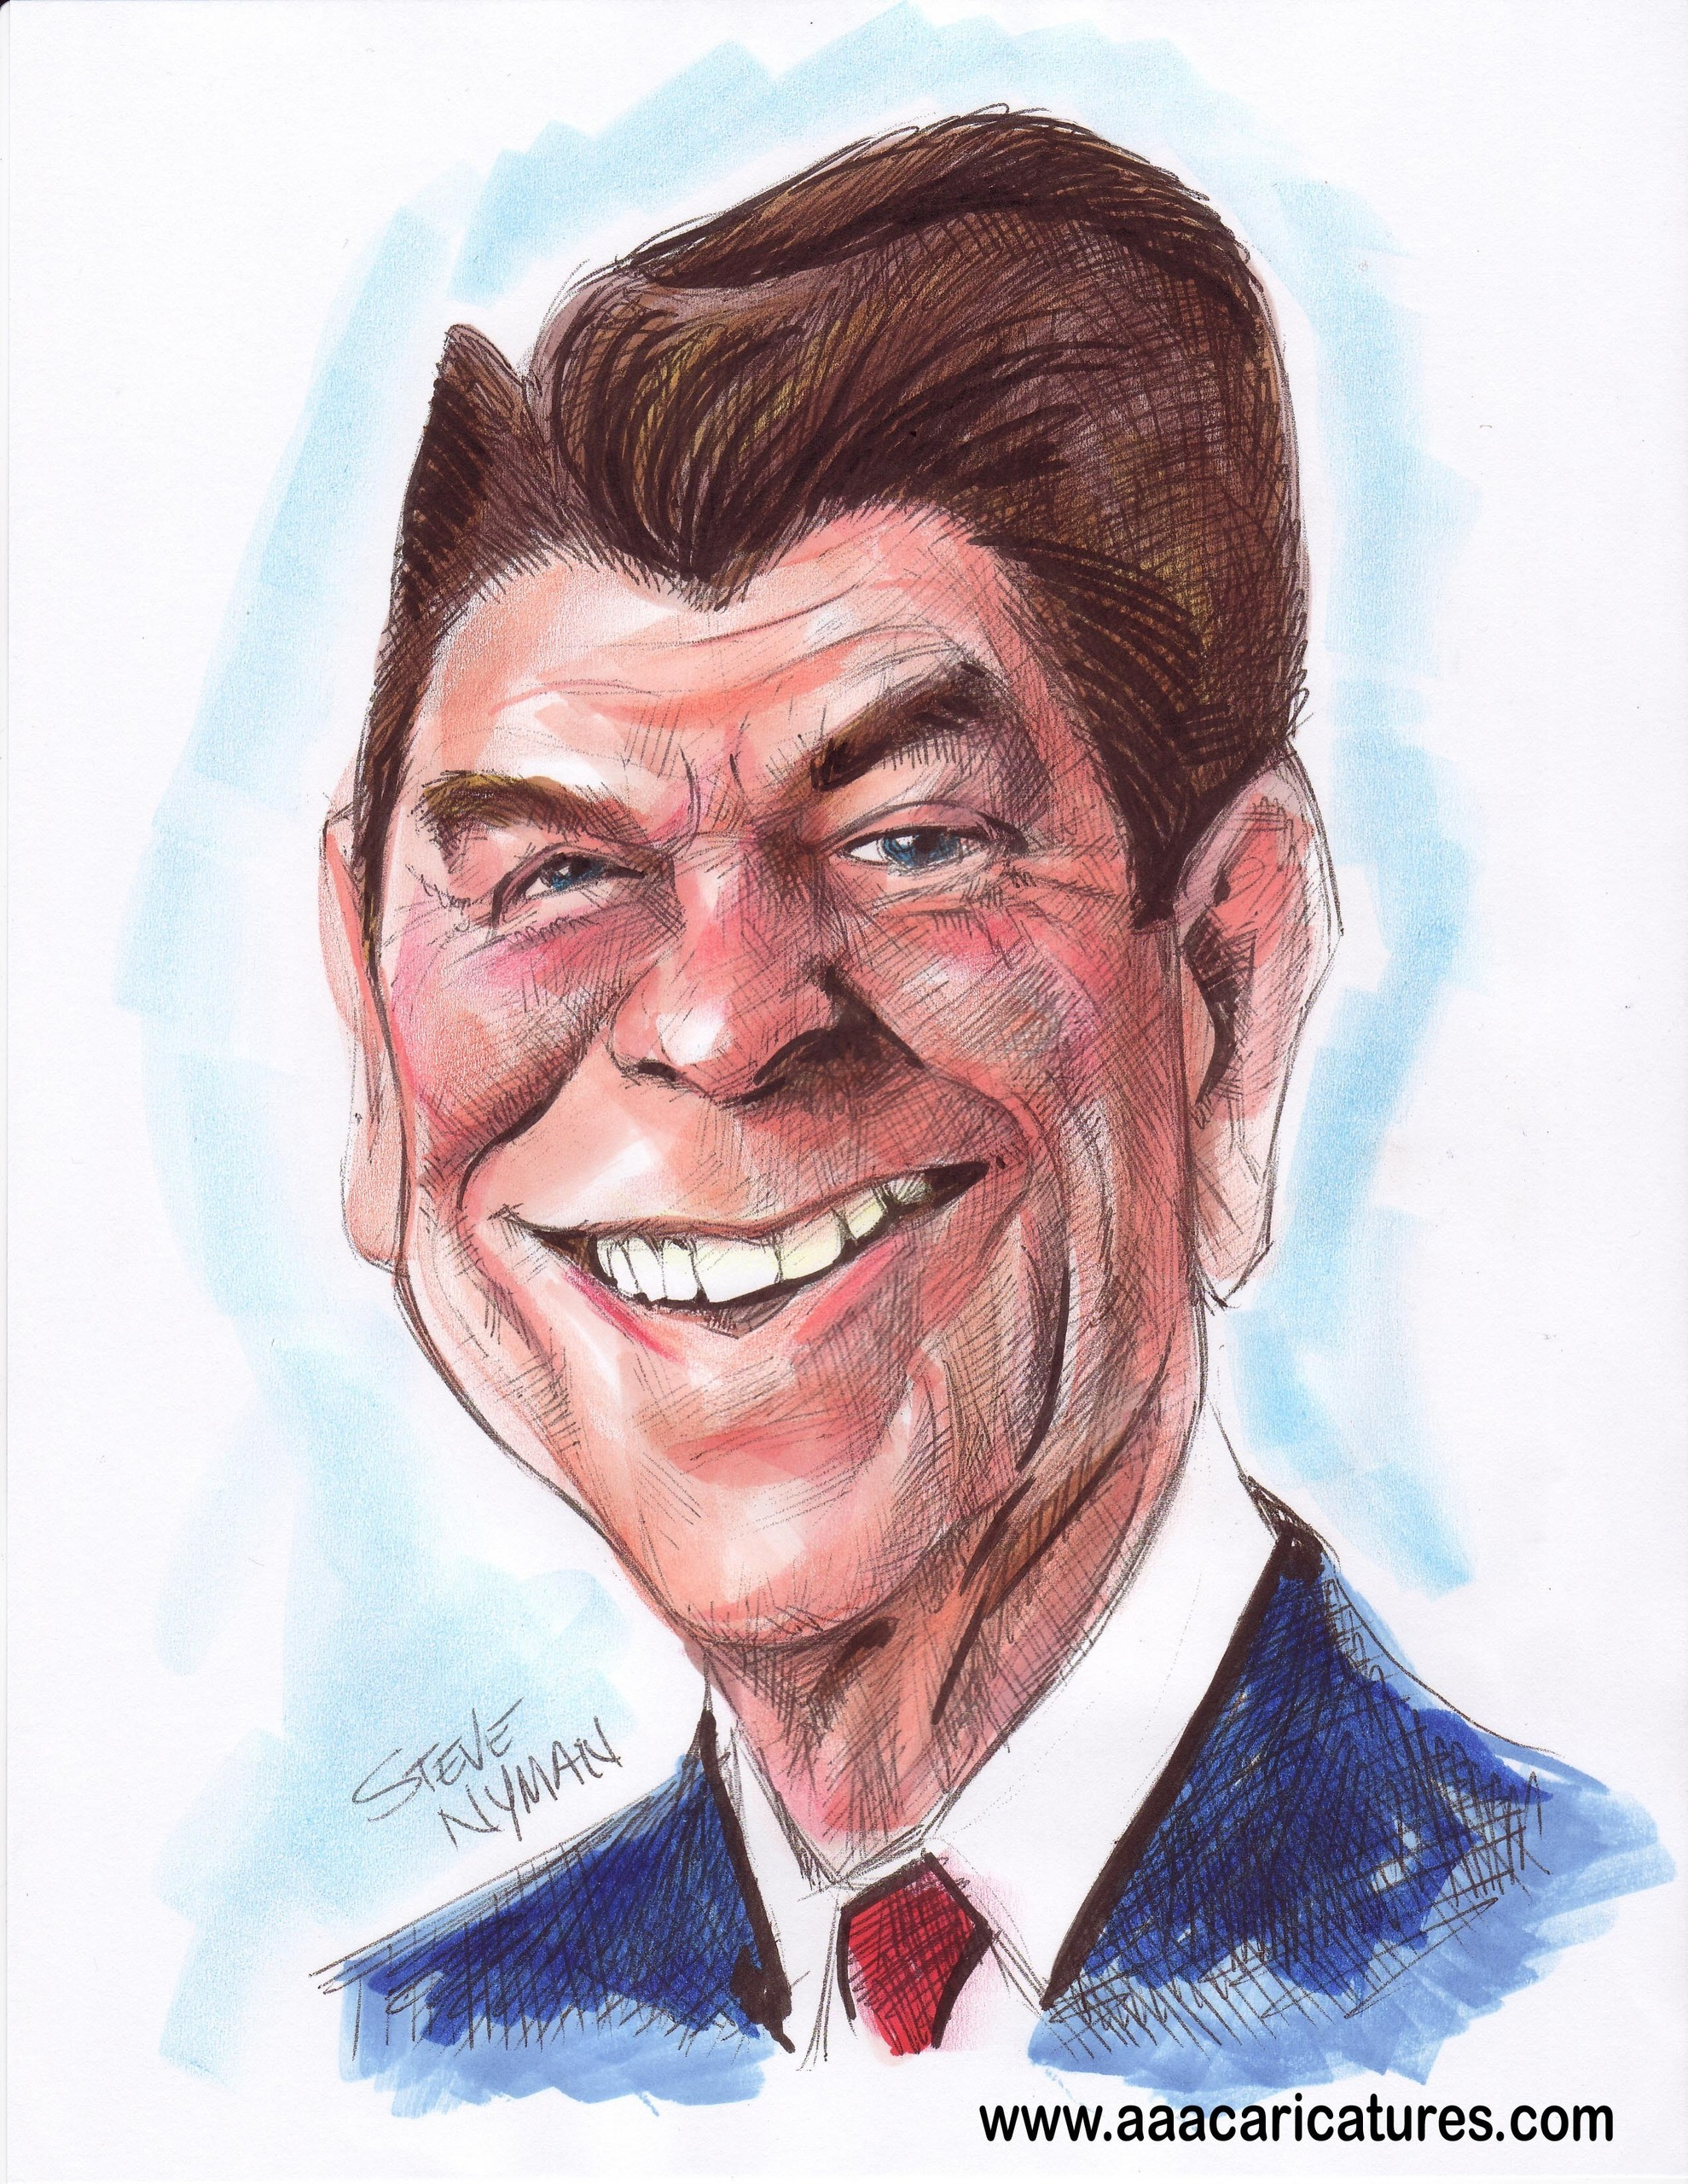 Ronald Reagan image Ronald Reagan Caricature Art HD wallpapers and